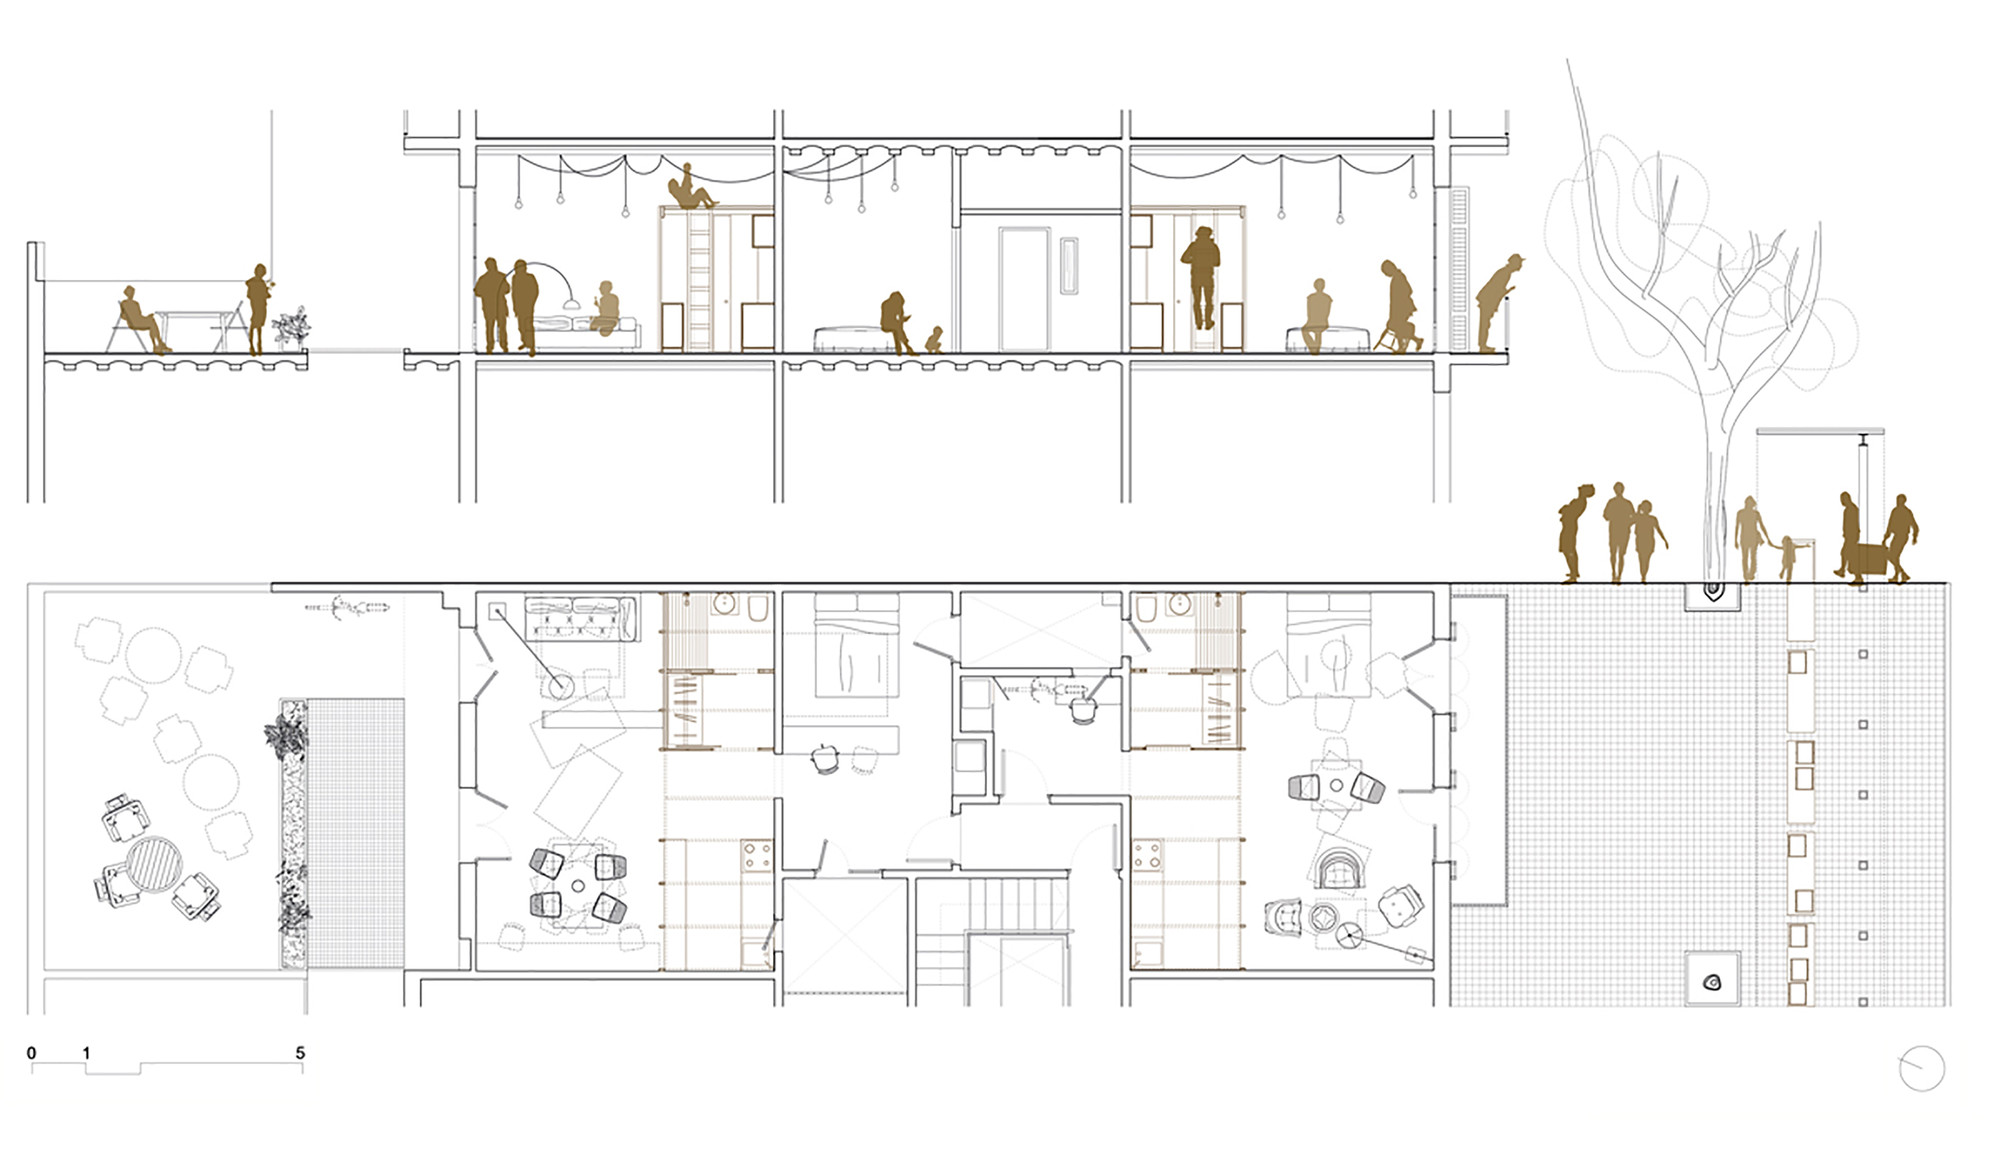 Gallery of 2 dwellings at tamarit st carles enrich 13 for Floor plans elevations and sections